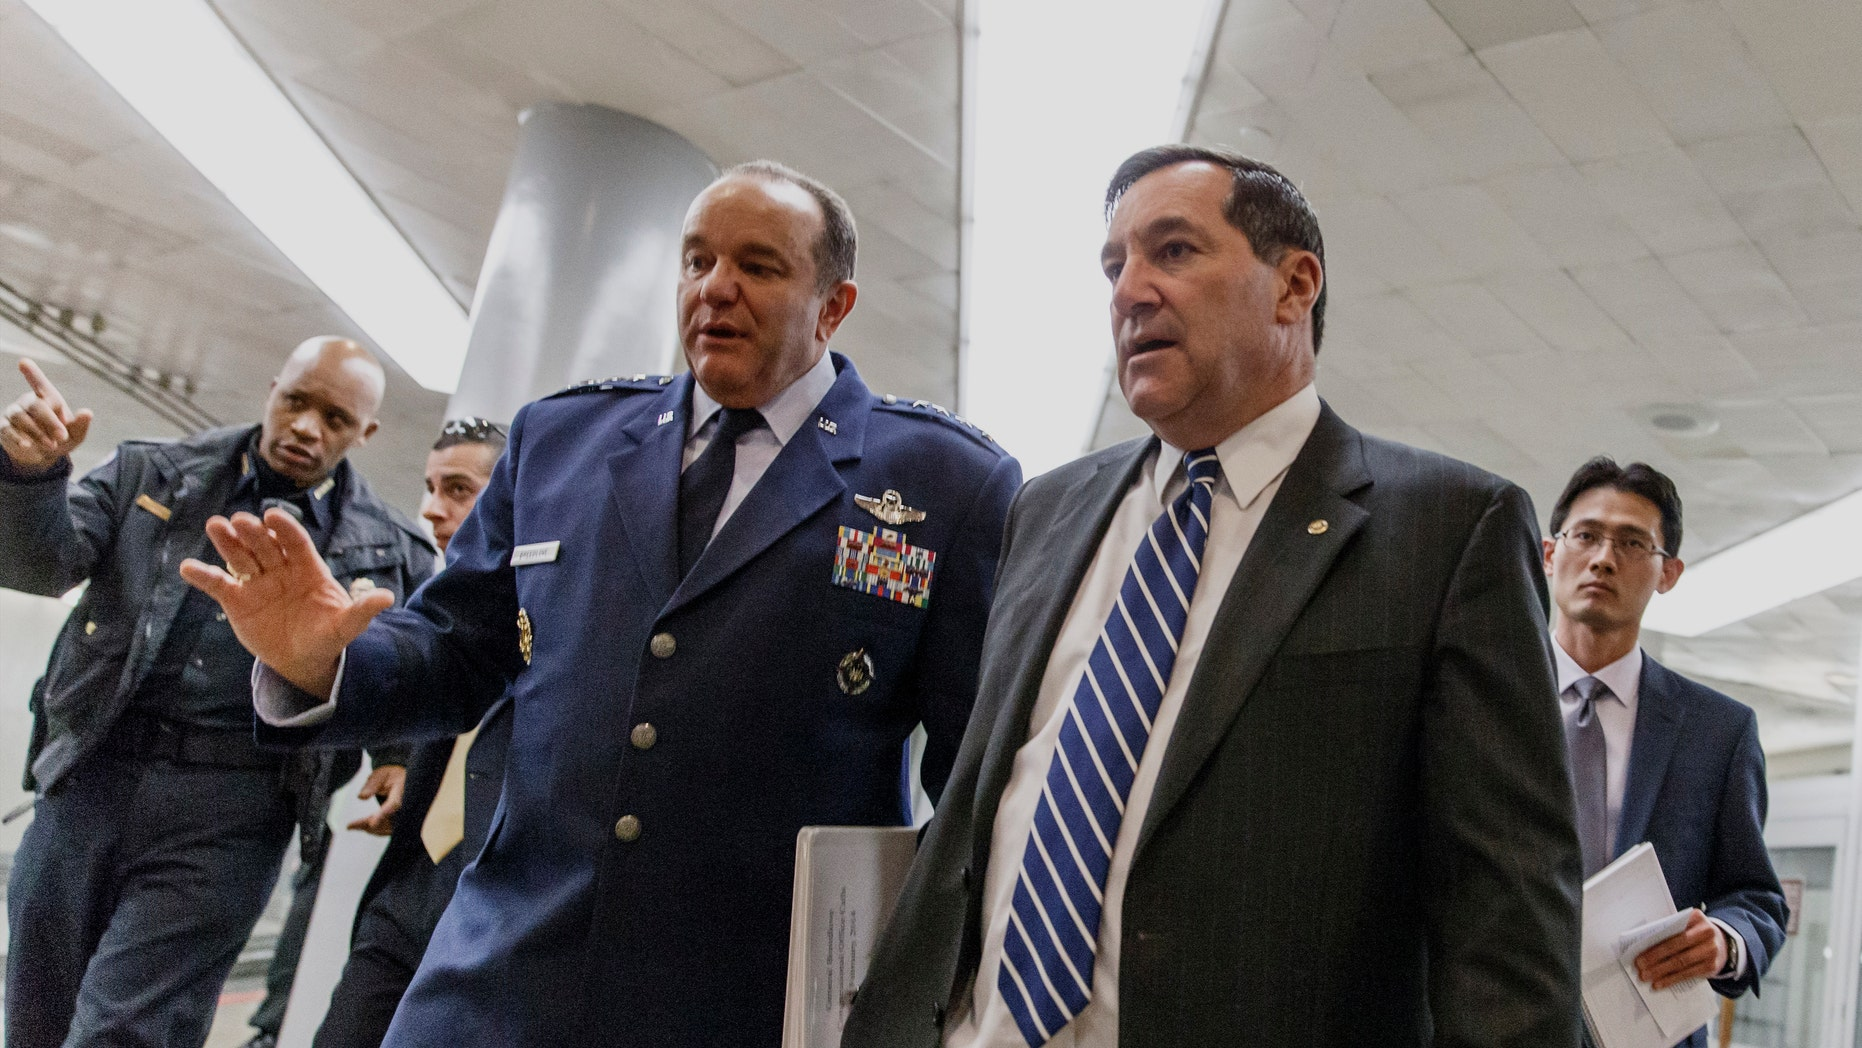 Feb. 12, 2014: Air Force Gen. Philip M. Breedlove, Supreme Allied Commander, Europe, walking with Sen. Joe Donnelly, D-Ind. on Capitol Hill in Washington.